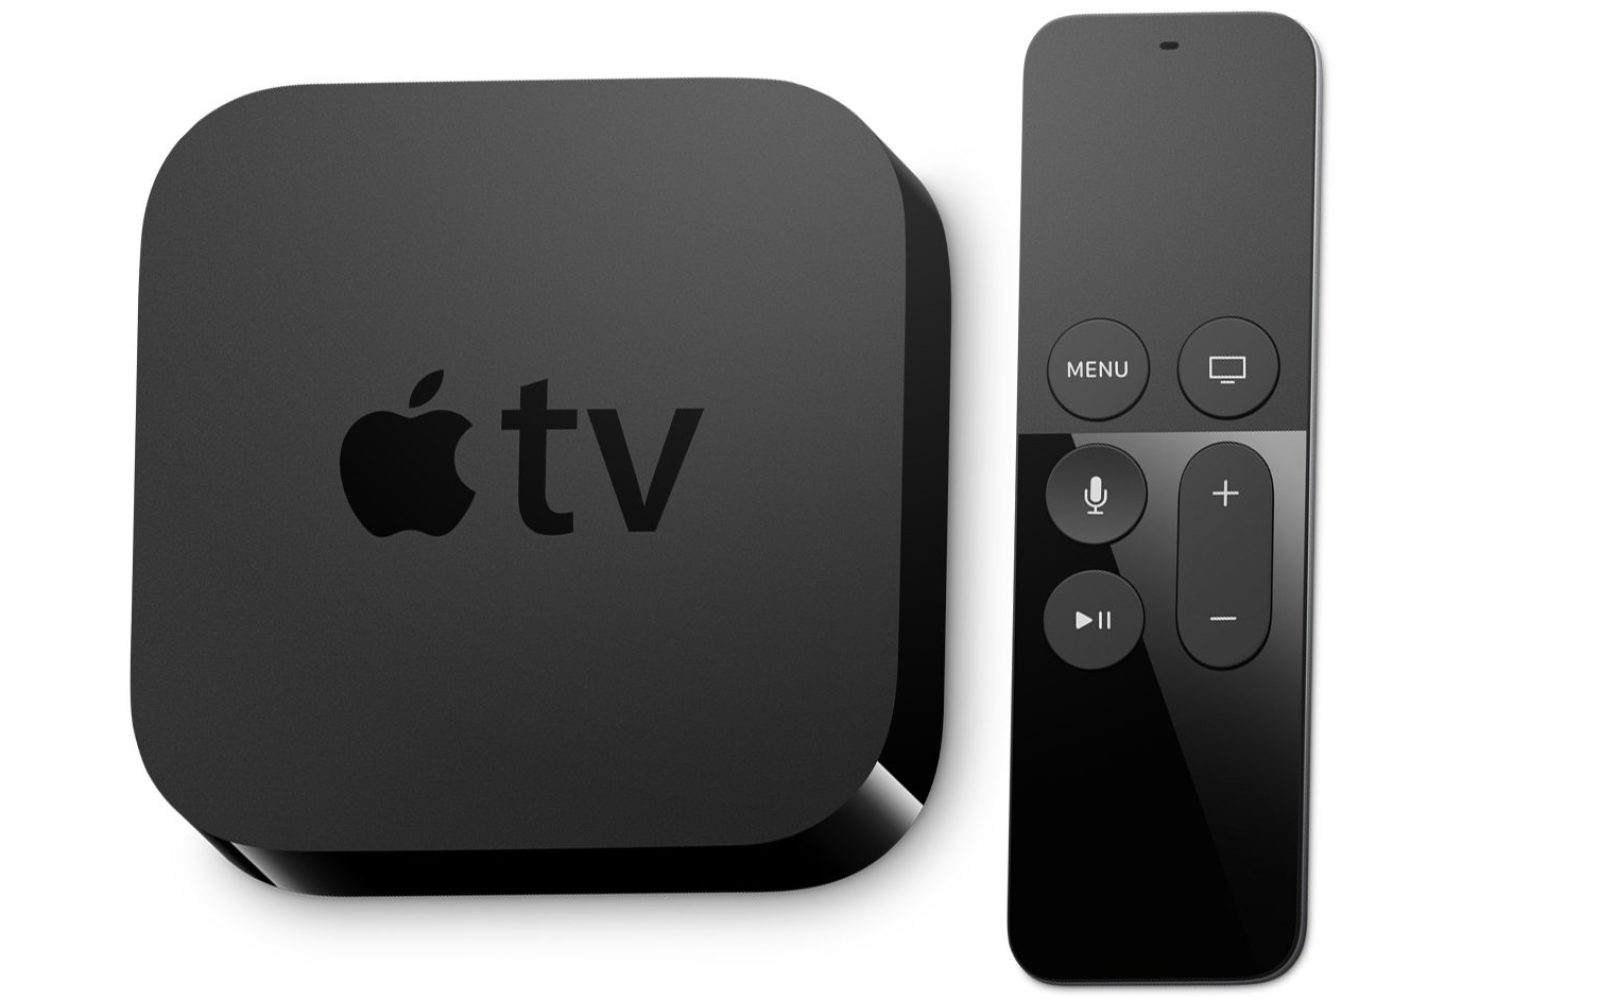 Apple TV accessory makers can now use App Launch, Wi-Fi configuration, VoiceOver and other iOS features on tvOS